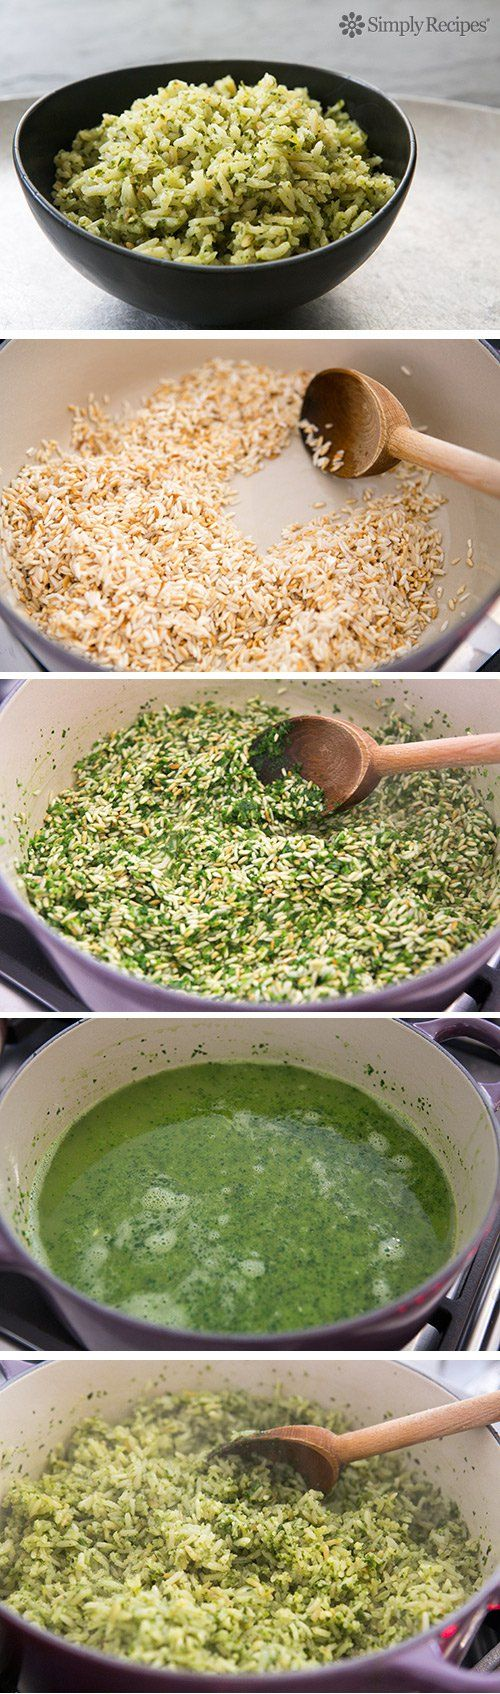 Mexican Green Rice ~ Mexican green rice, cilantro rice, a rice pilaf cooked in chicken stock with poblano chiles, parsley, cilantro, onion, and garlic. Arroz verde. ~ SimplyRecipes.com